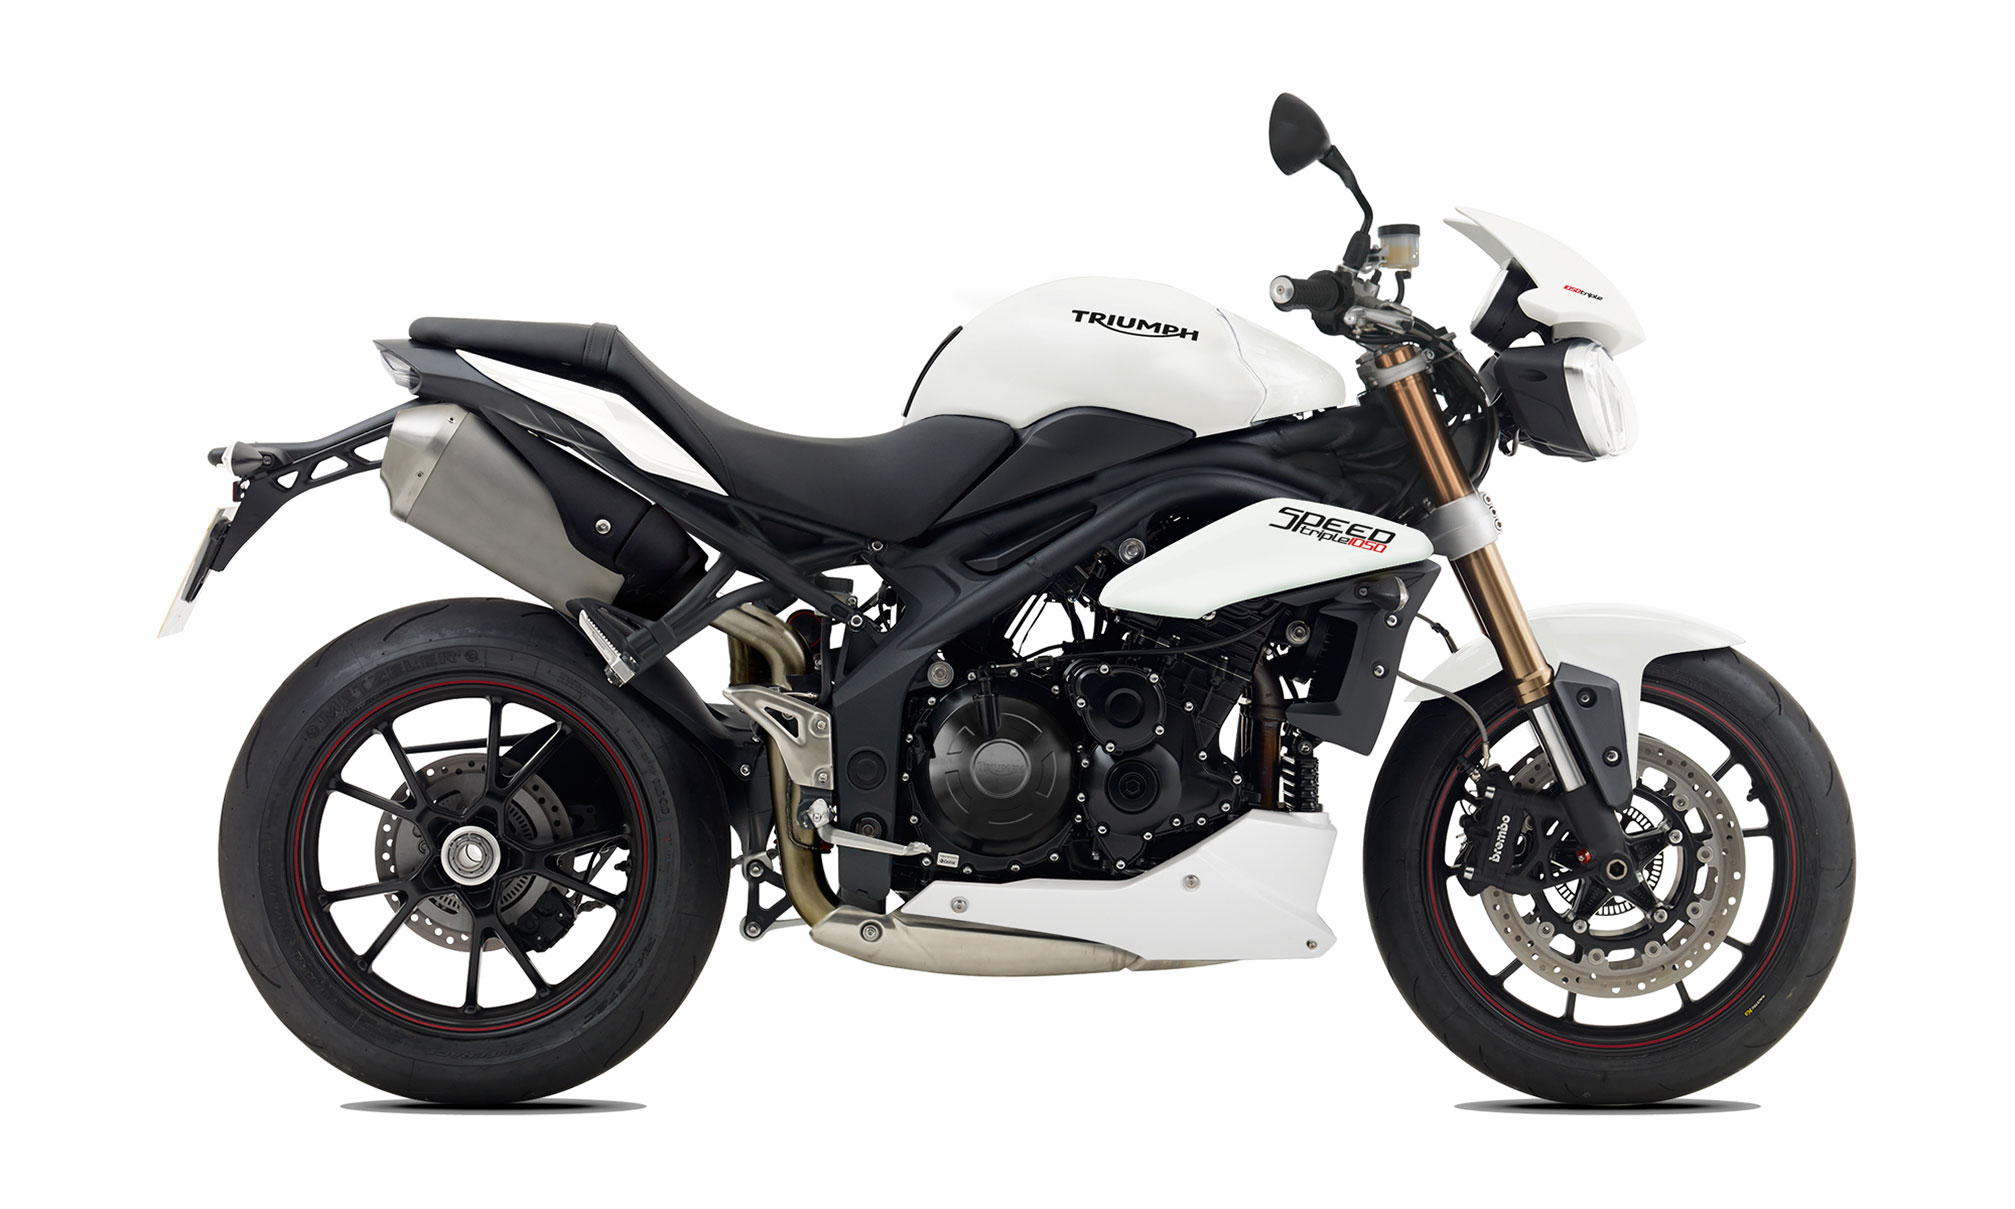 2015 Triumph of Westchester Speed Triple 002